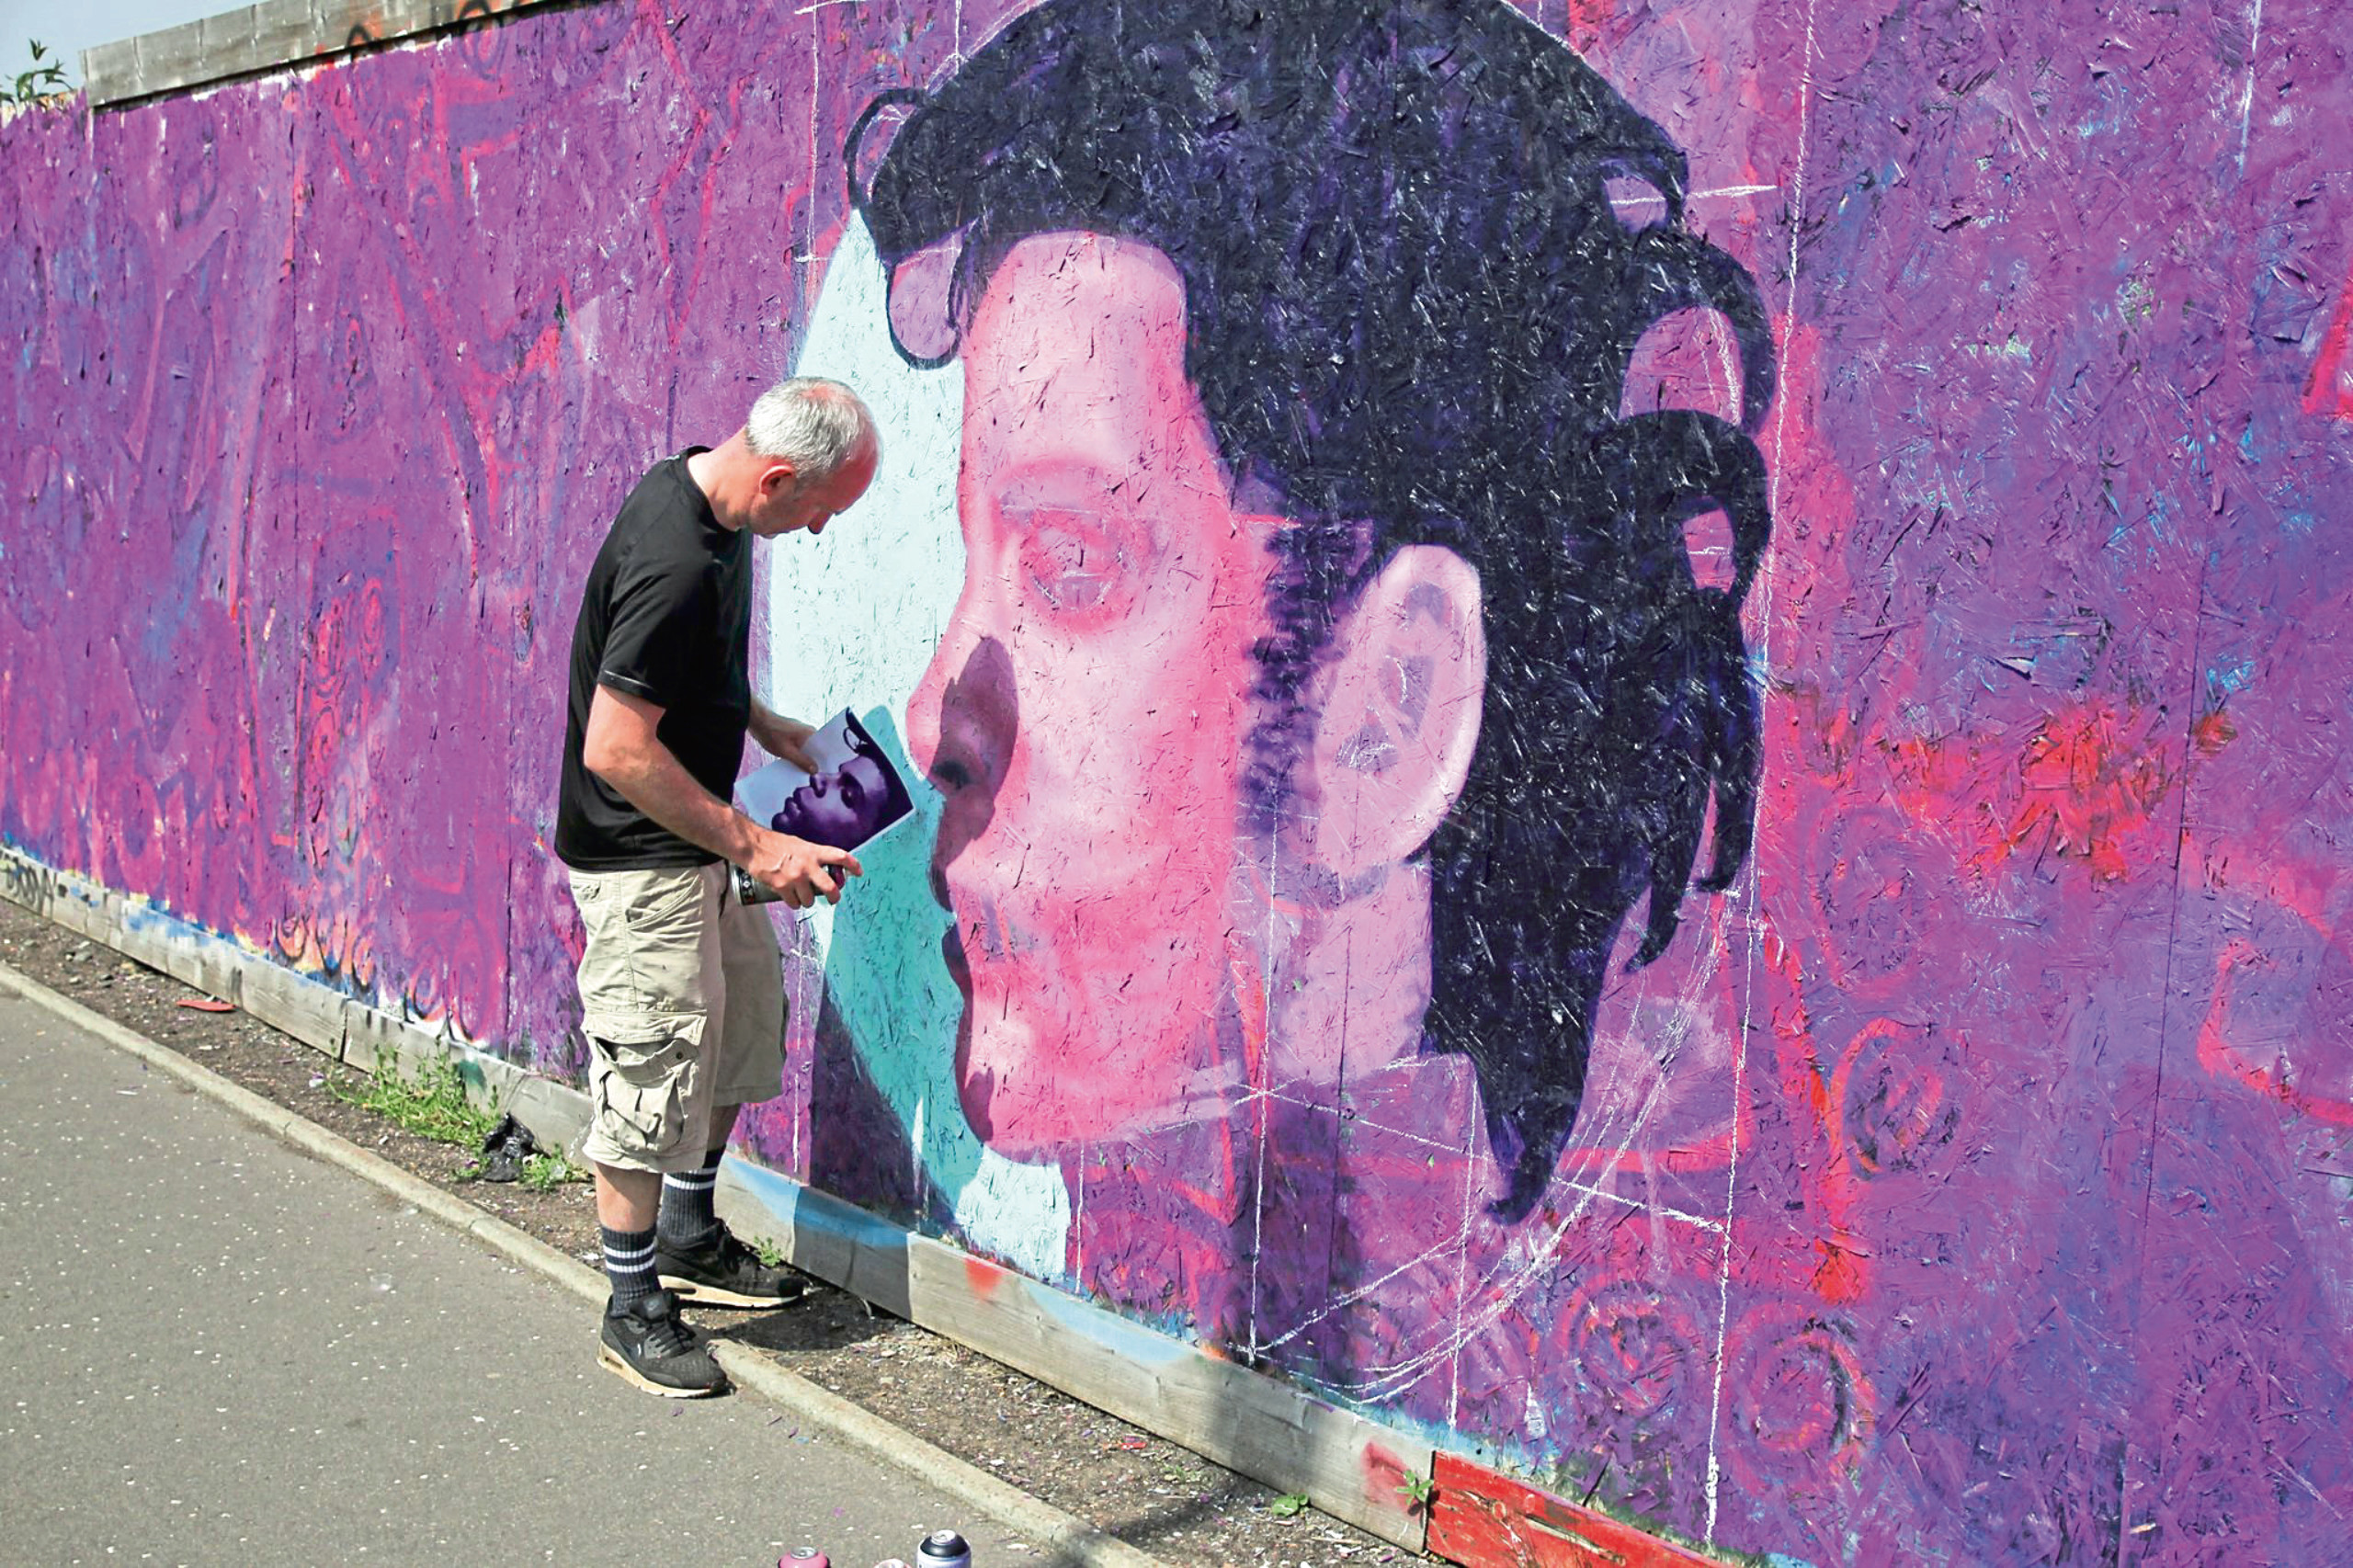 One of the participants in the Graffiti Jam